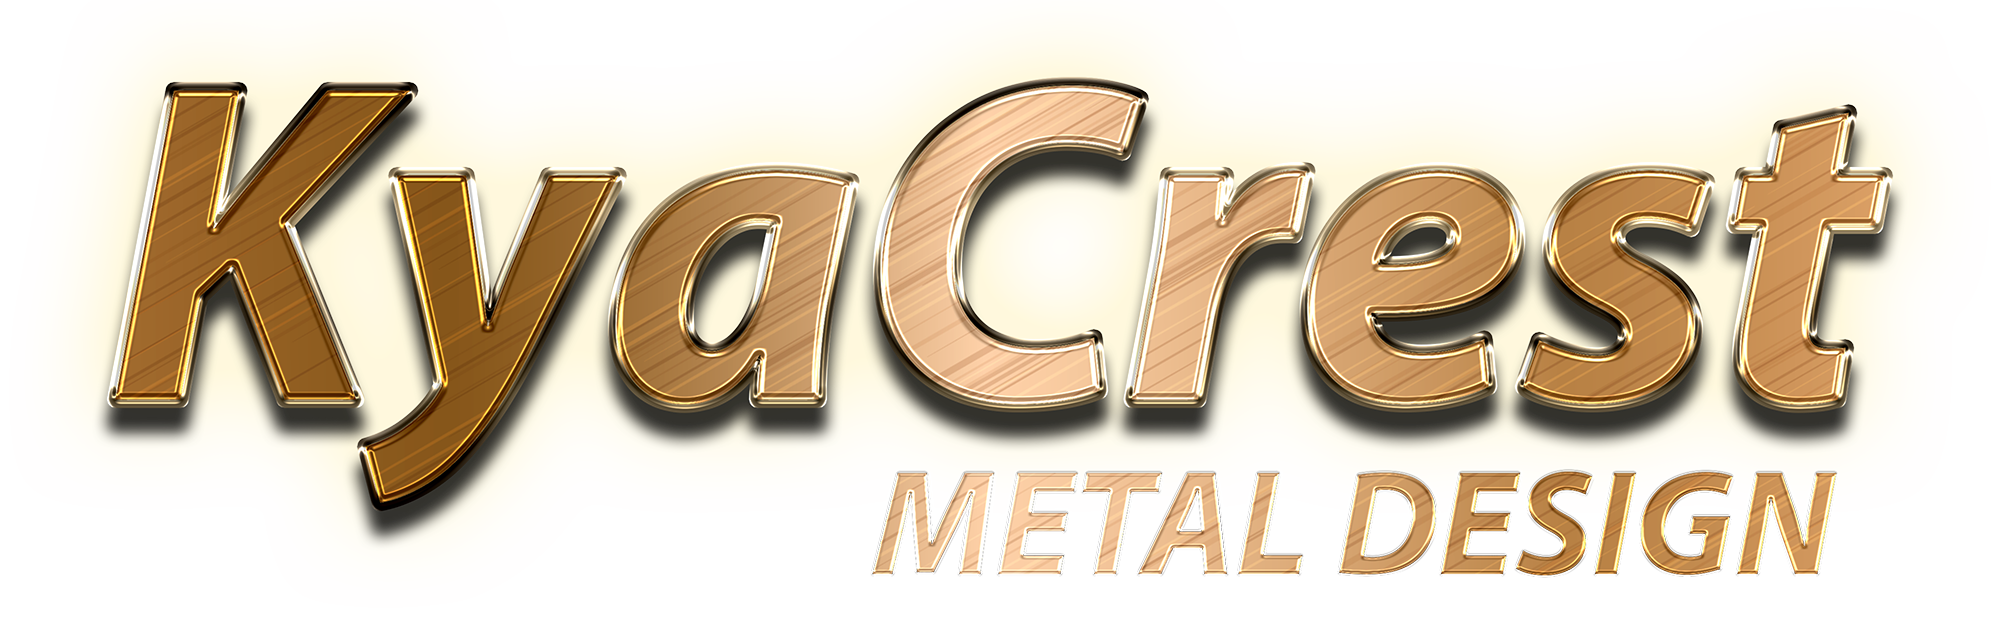 KyaCrest Metal Design